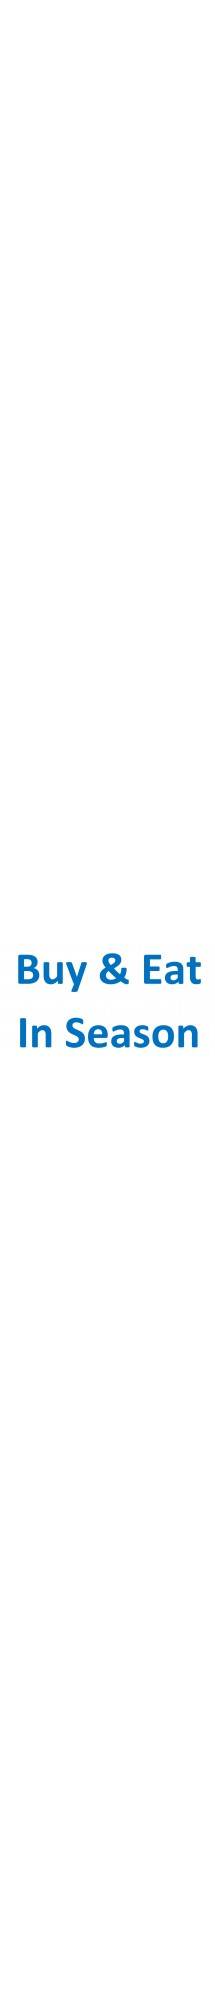 Buy & Eat In Season